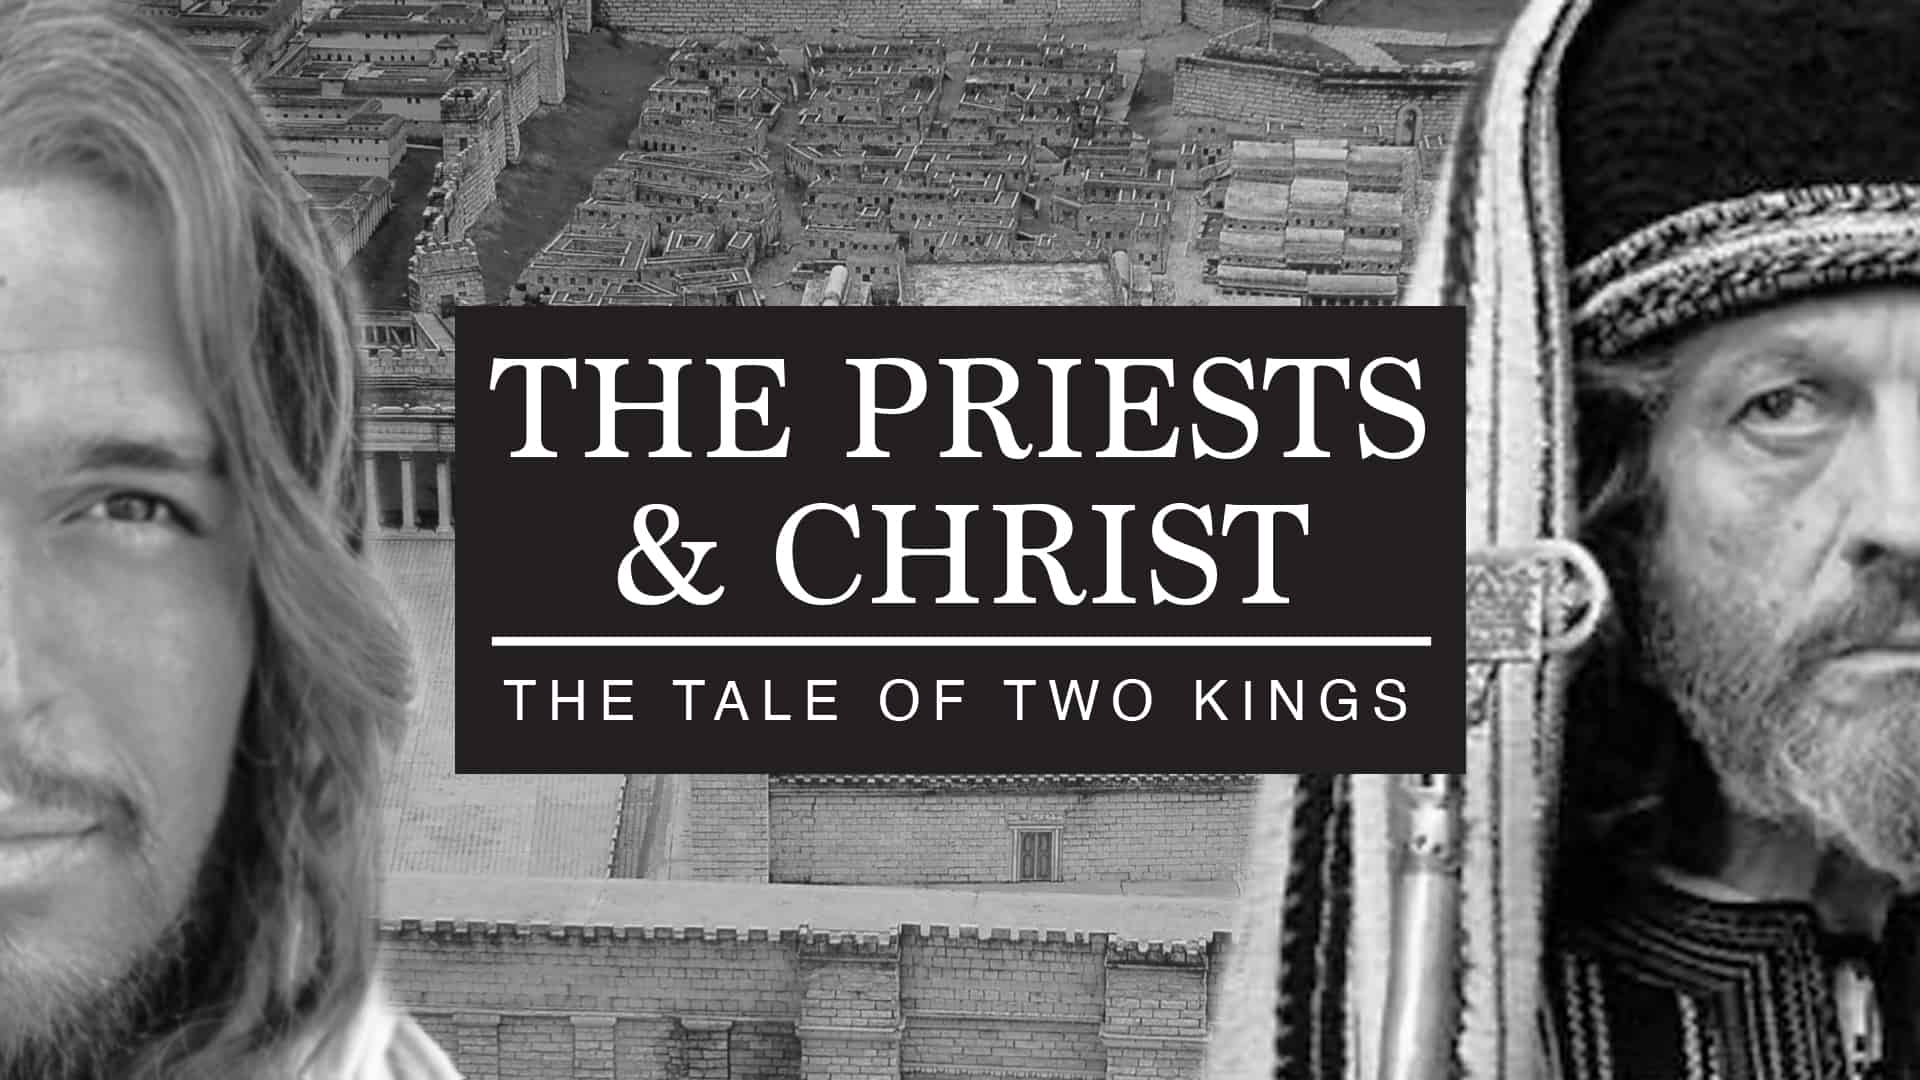 The Priests & Christ